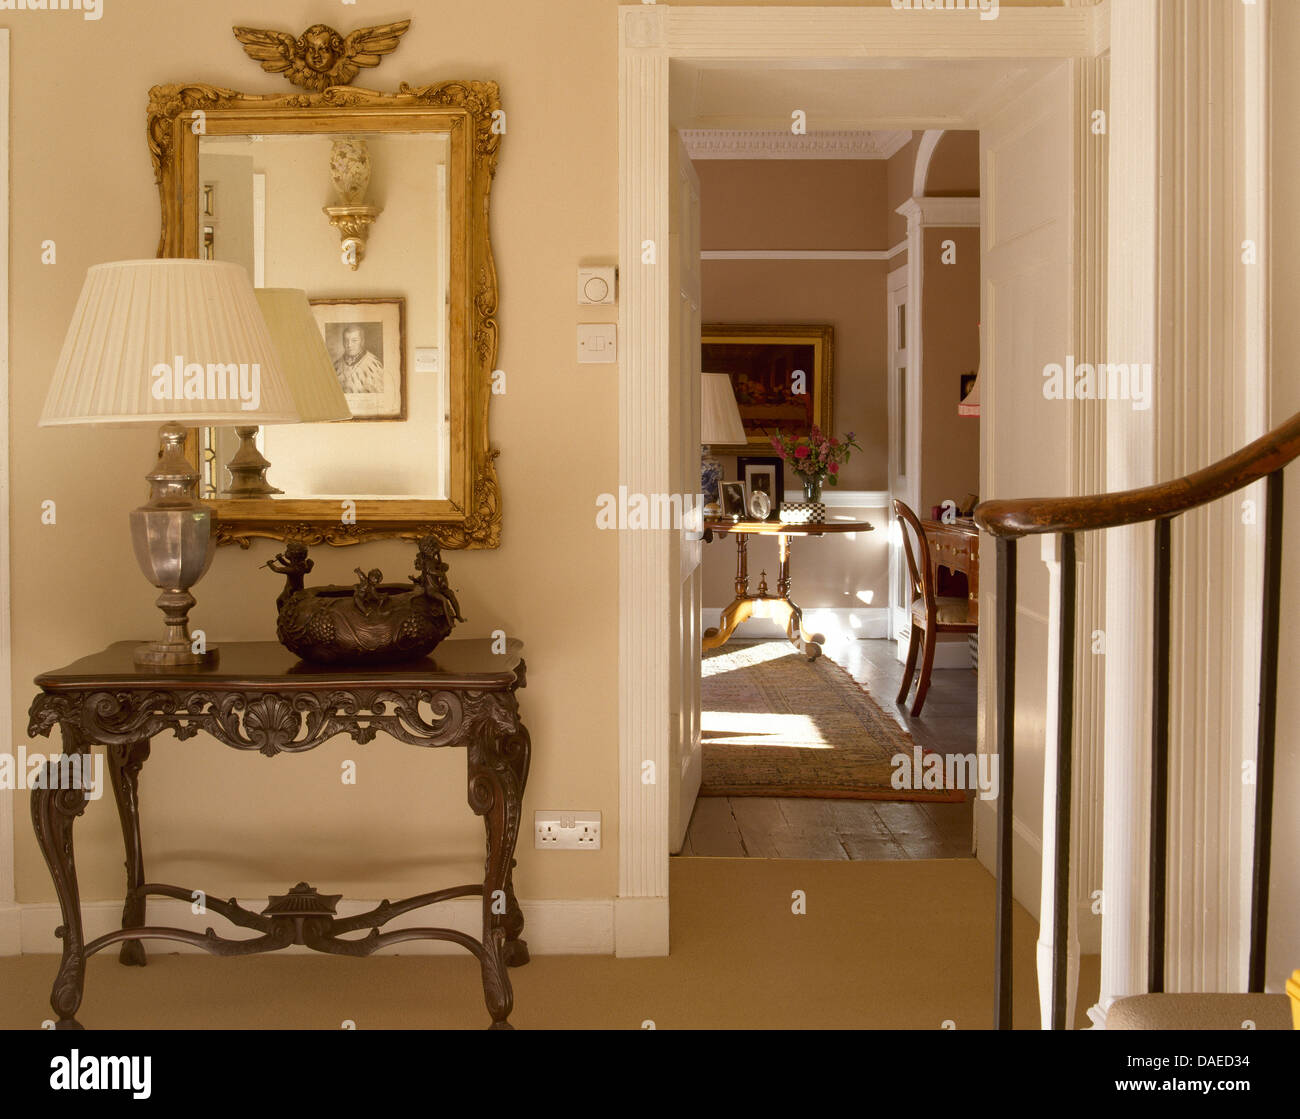 hall console table with mirror. Country Hall With Ornate Antique Gilt Mirror Above Console Table Metal Lamp Beside Doorway To Dining Room Y